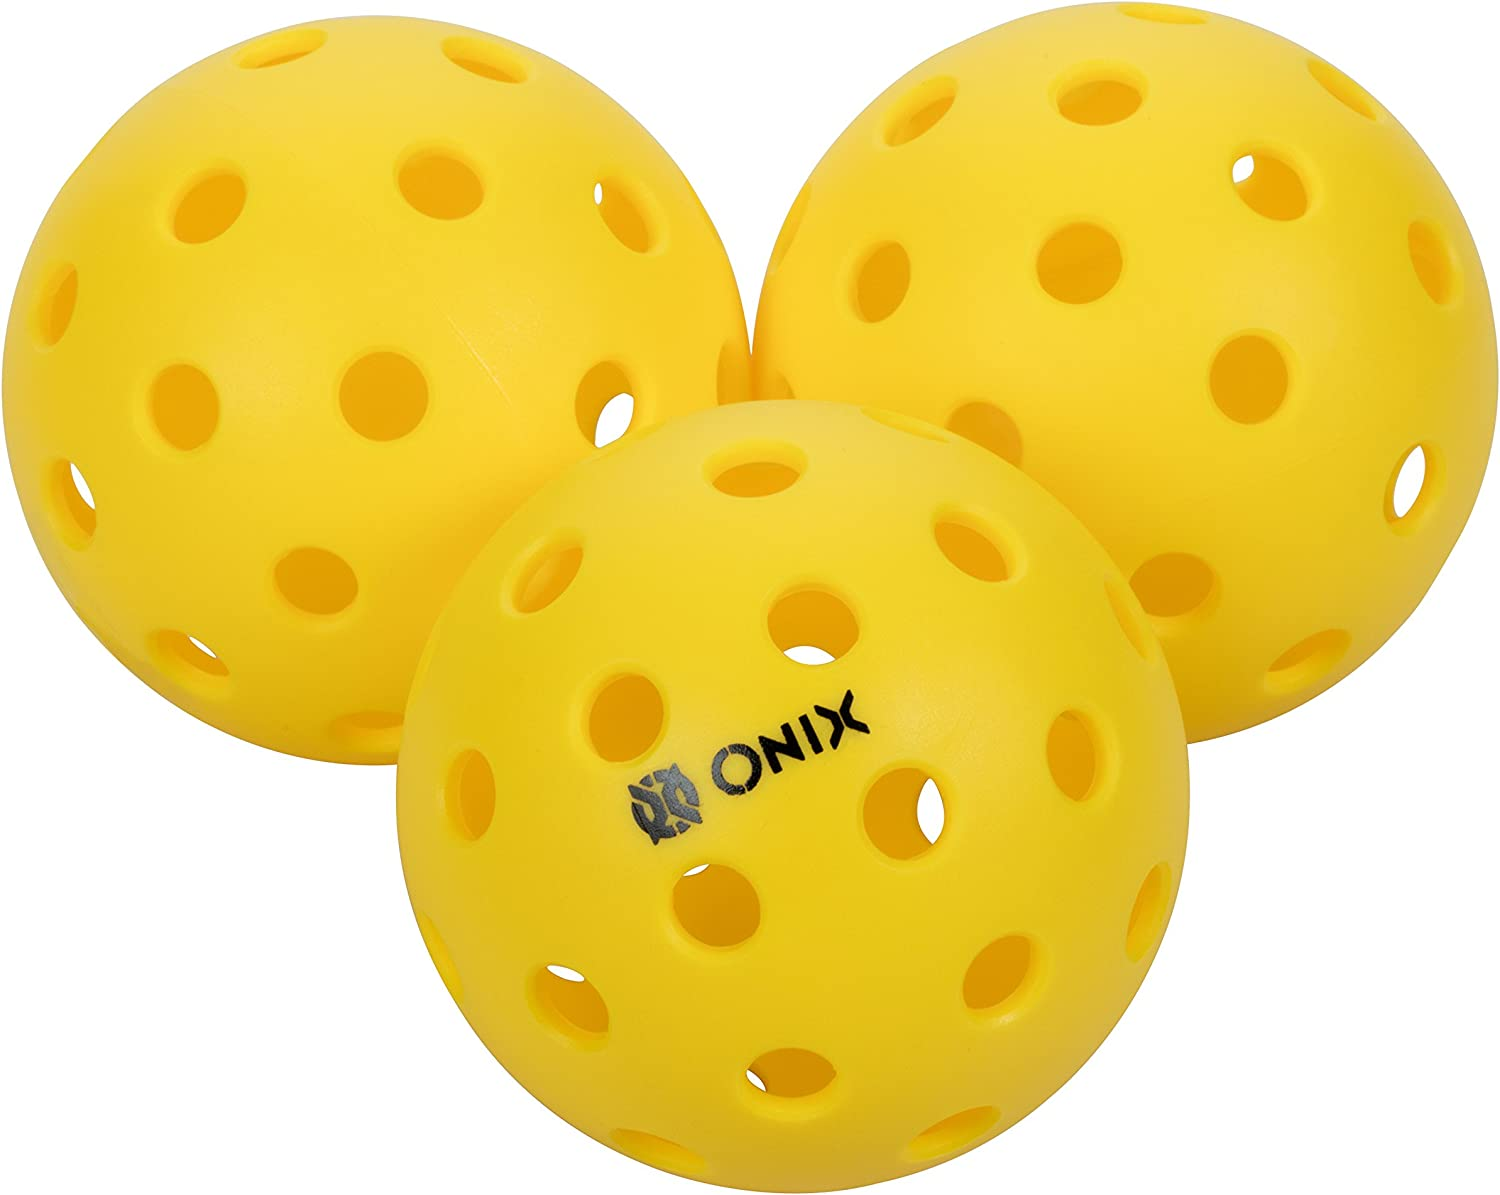 Onix Pure 2 Outdoor Pickleball Balls Specifically Designed and Optimized for Pickleball : Sports & Outdoors